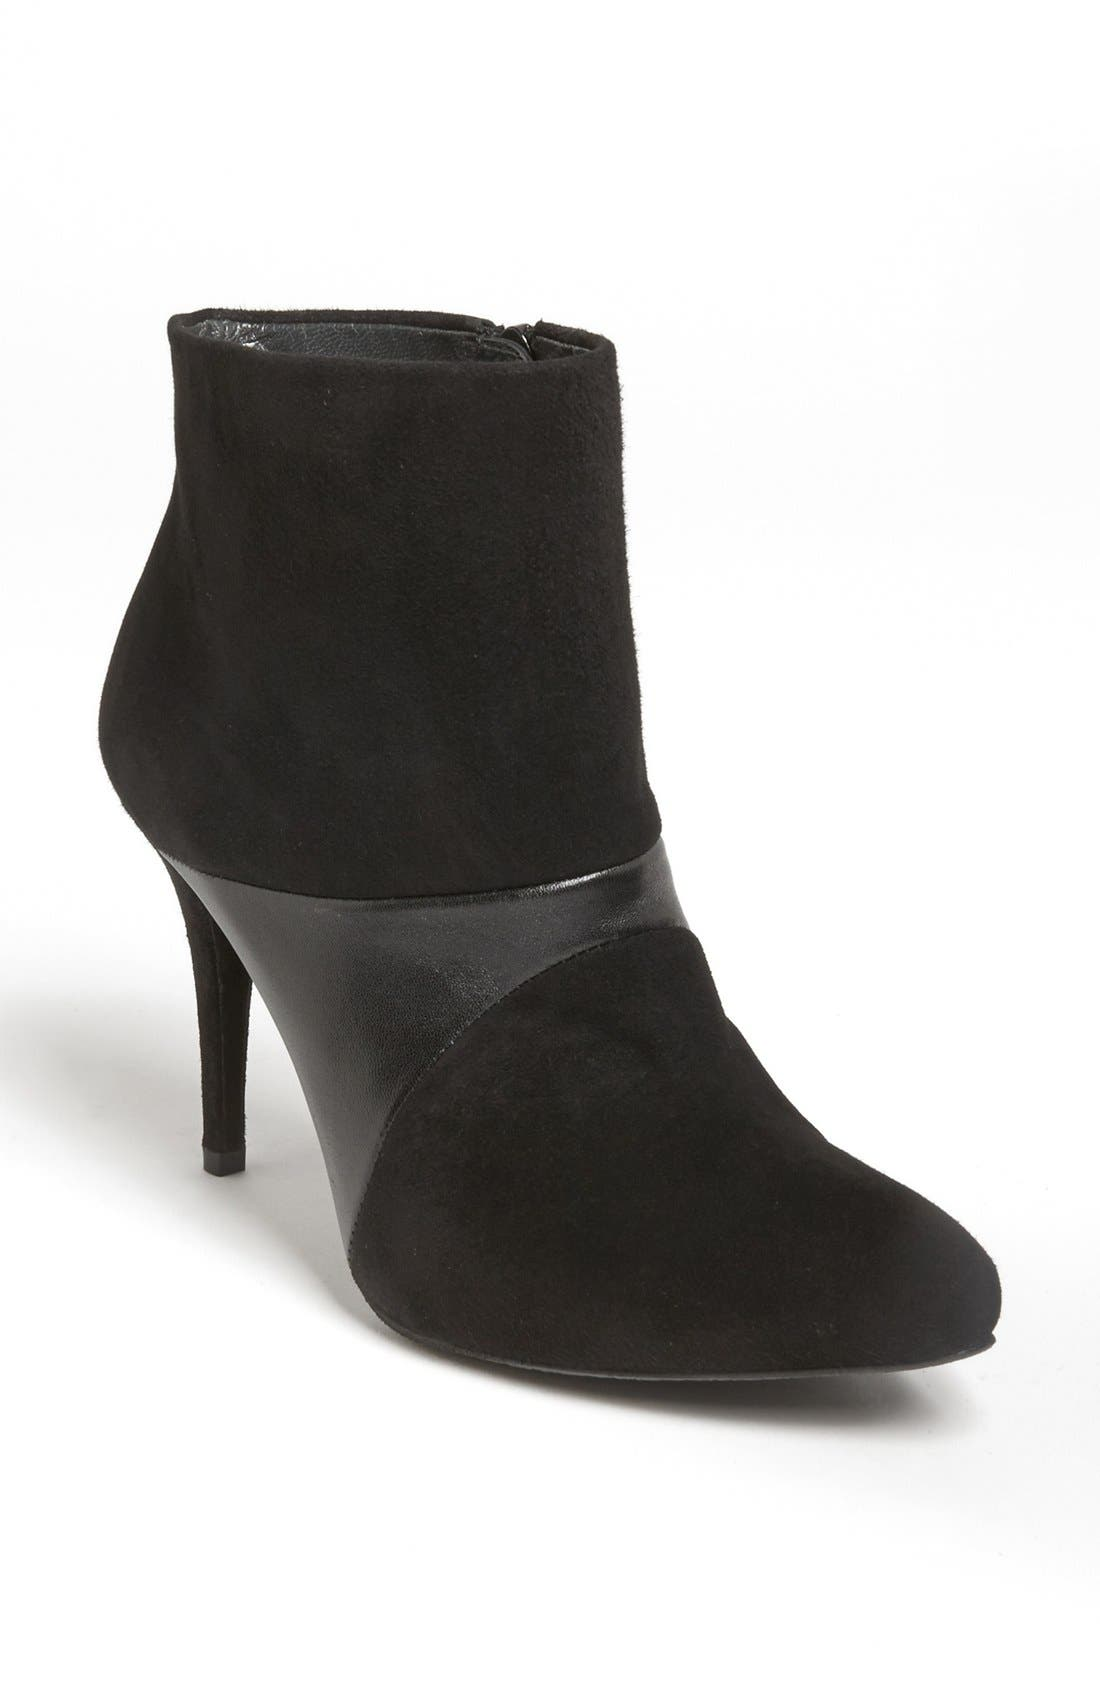 Alternate Image 1 Selected - Stuart Weitzman 'Partnership' Bootie